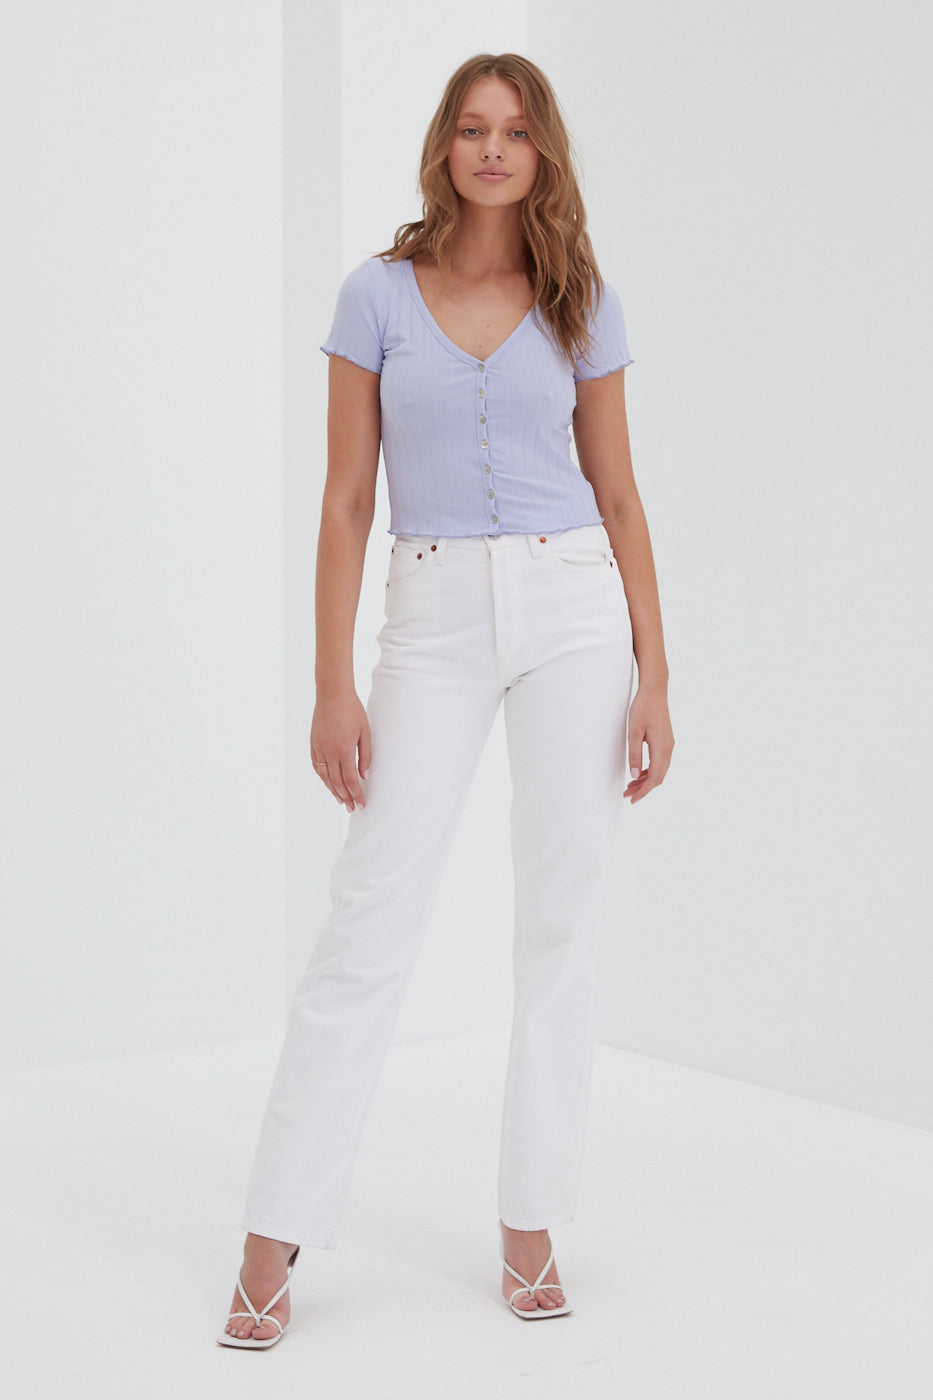 Ribbed Top - Lilac